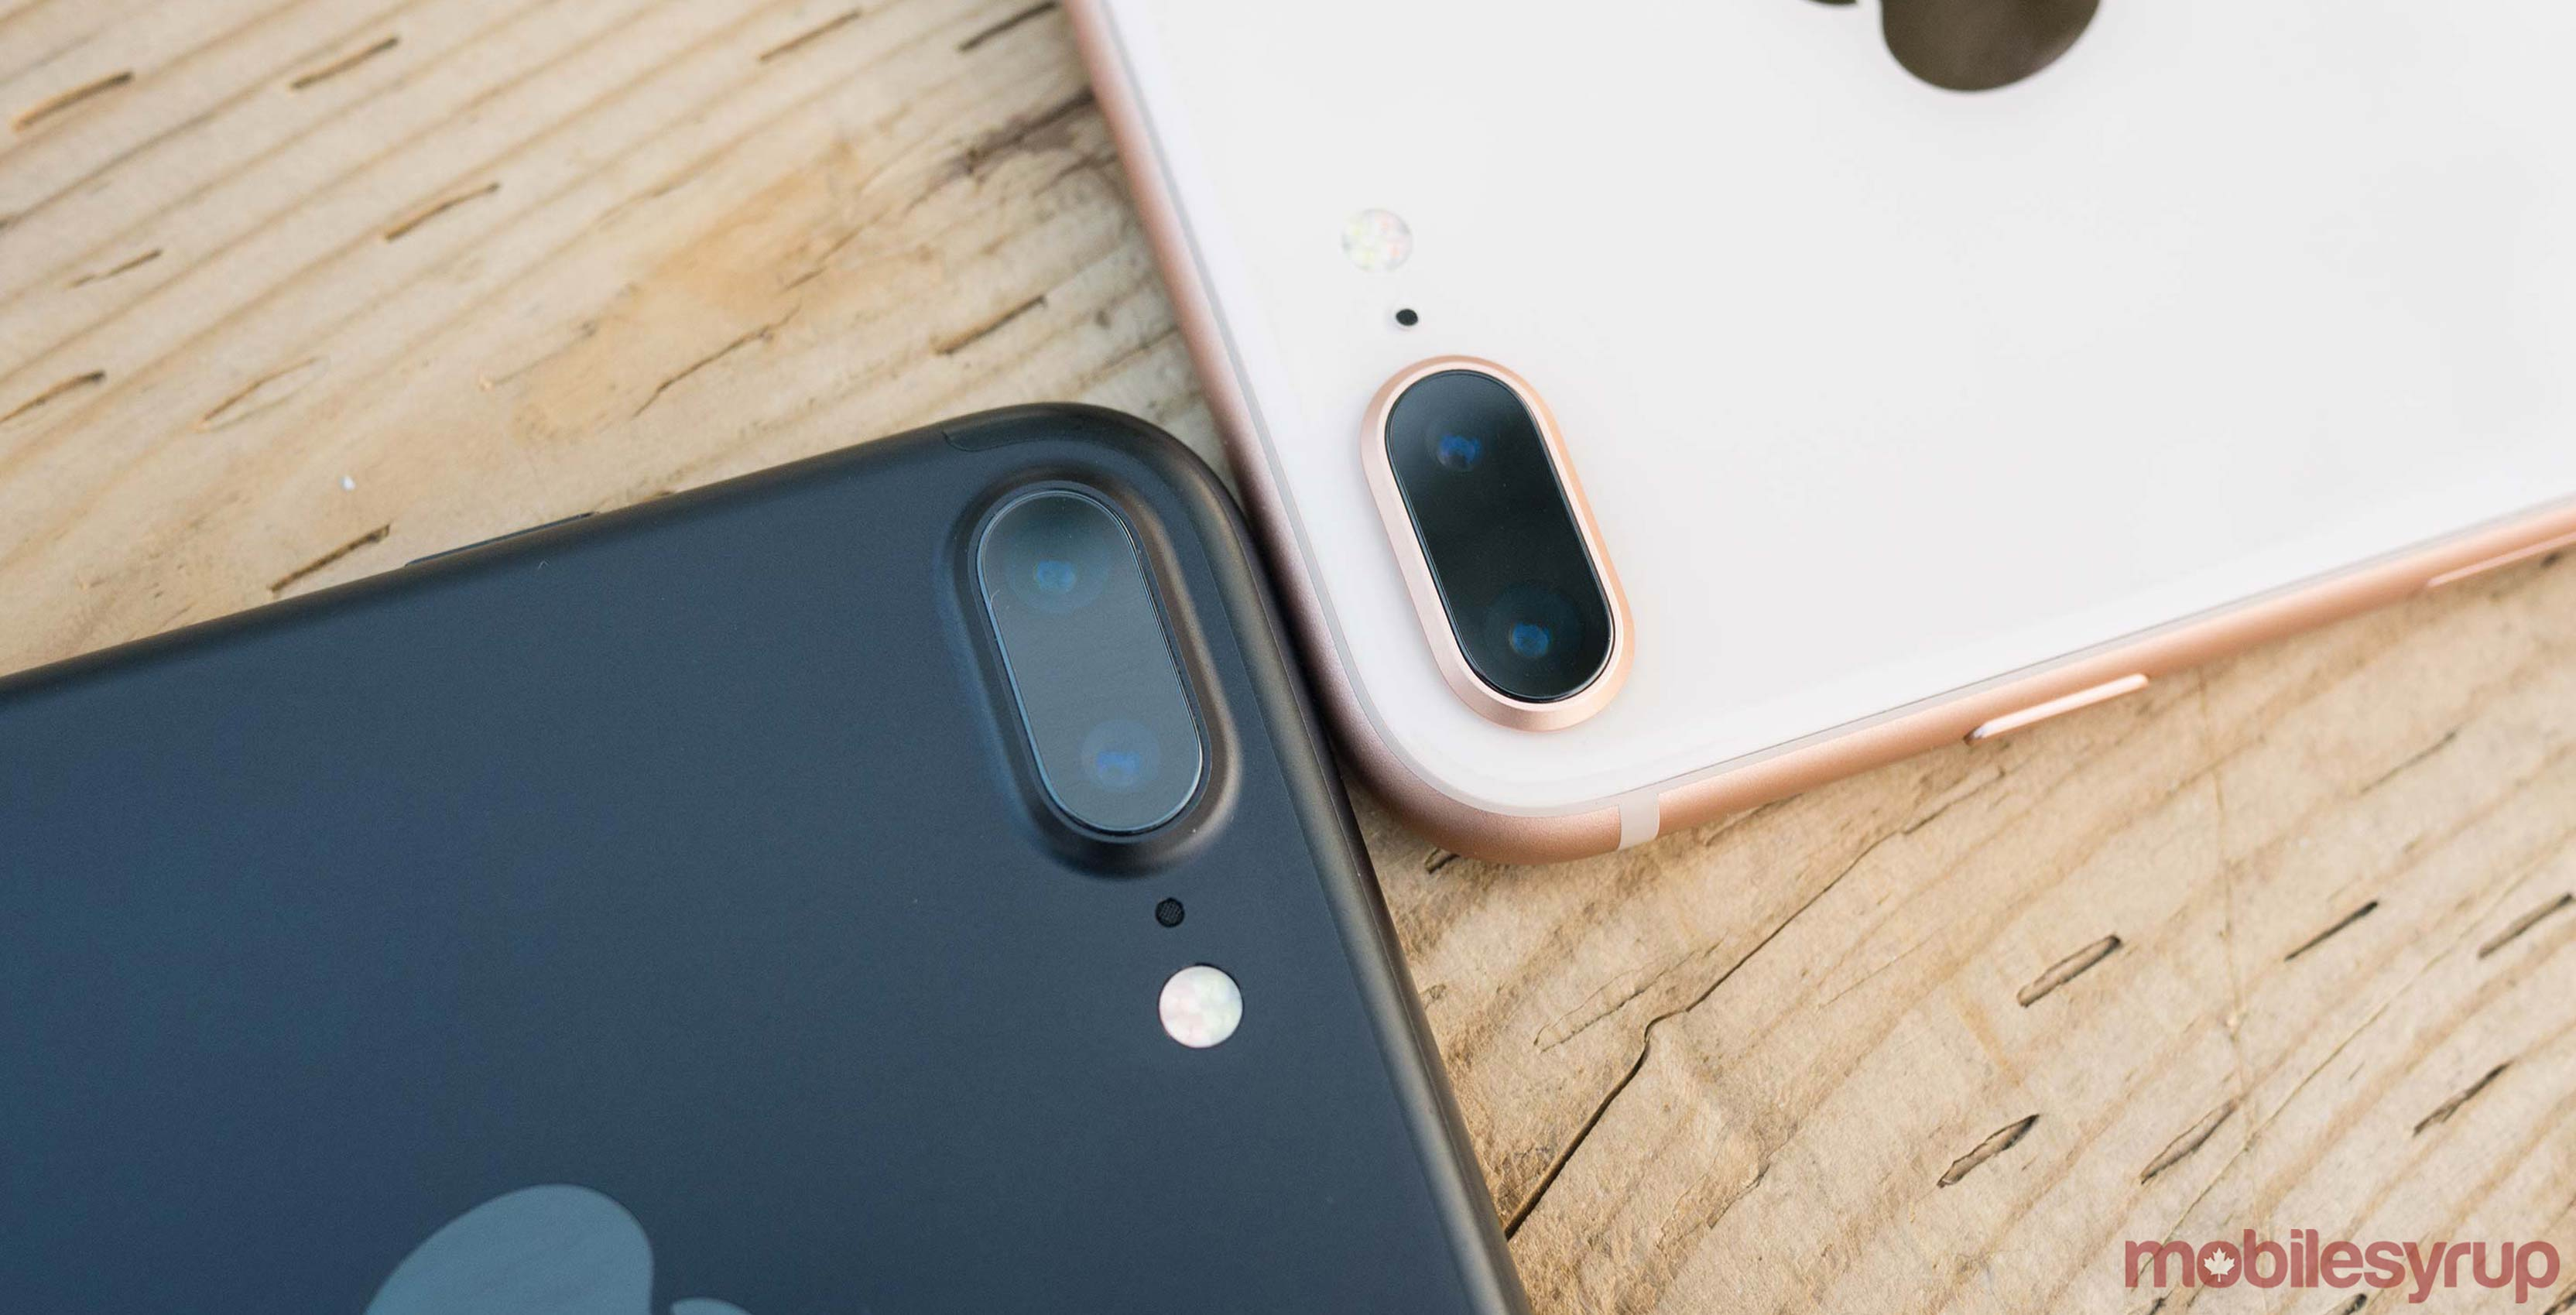 2018 iPhones to Drop Qualcomm for Intel